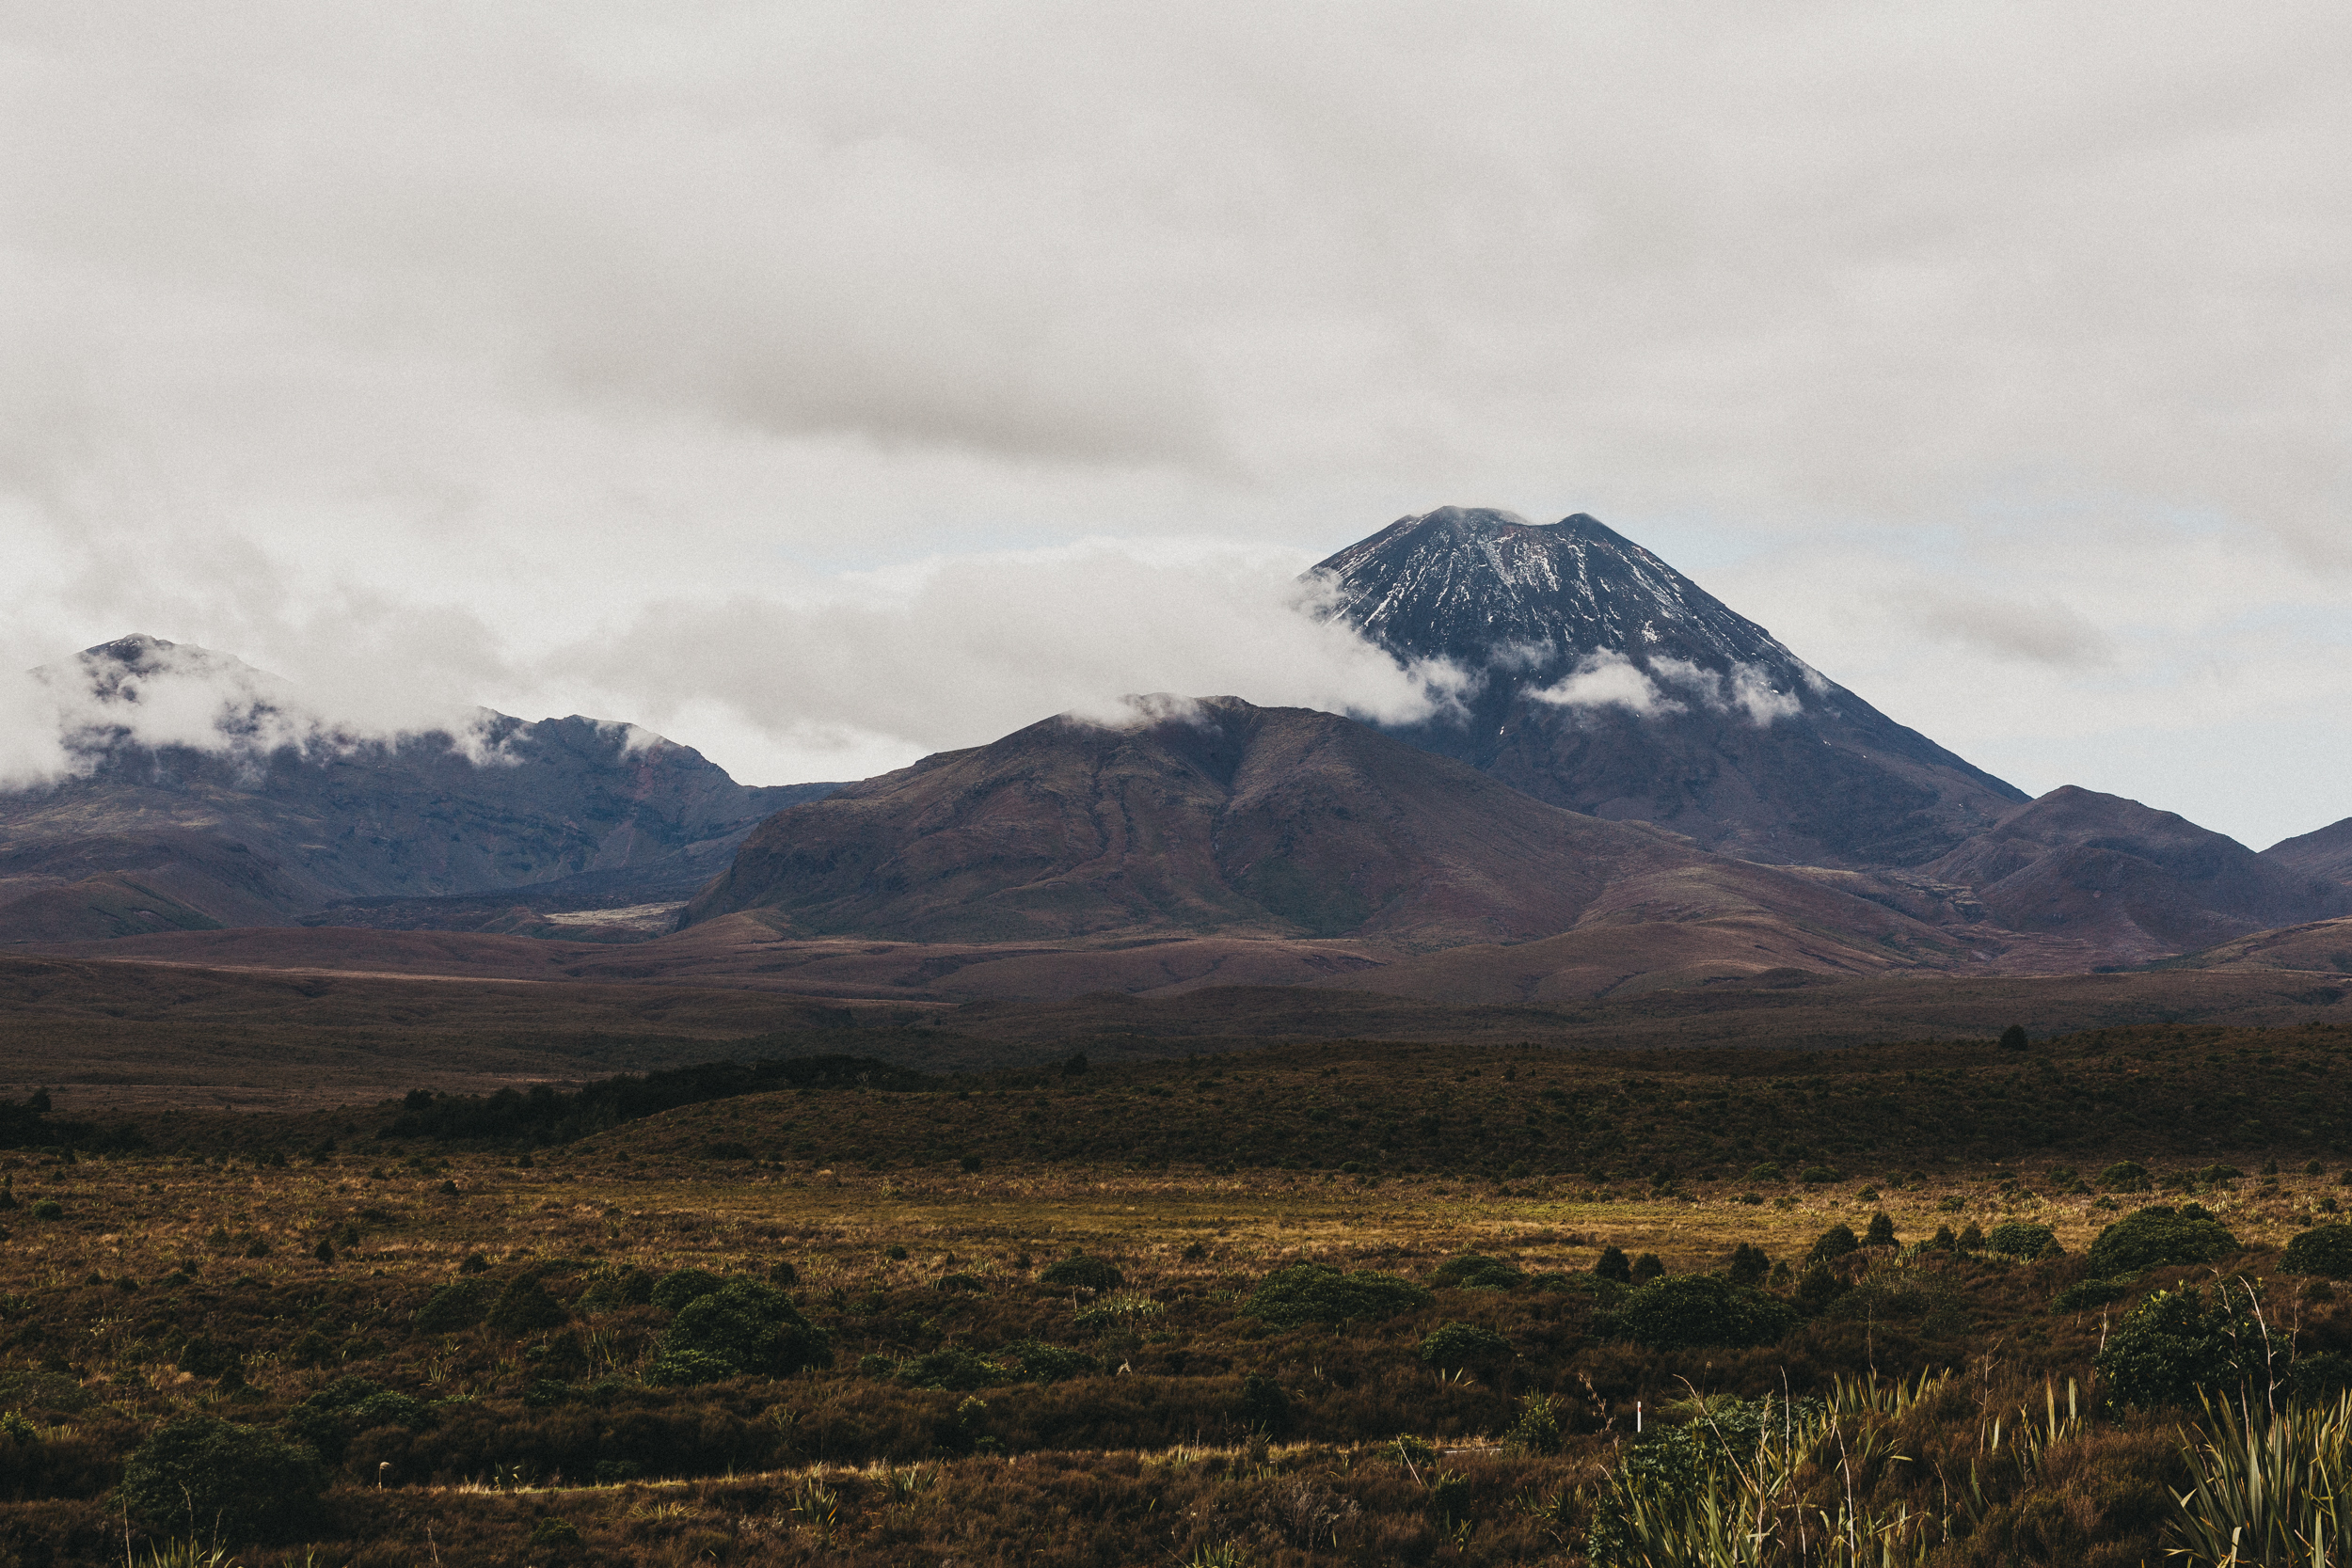 Day Five: driving past the volcanos that we were walking around with no visibility the day before!